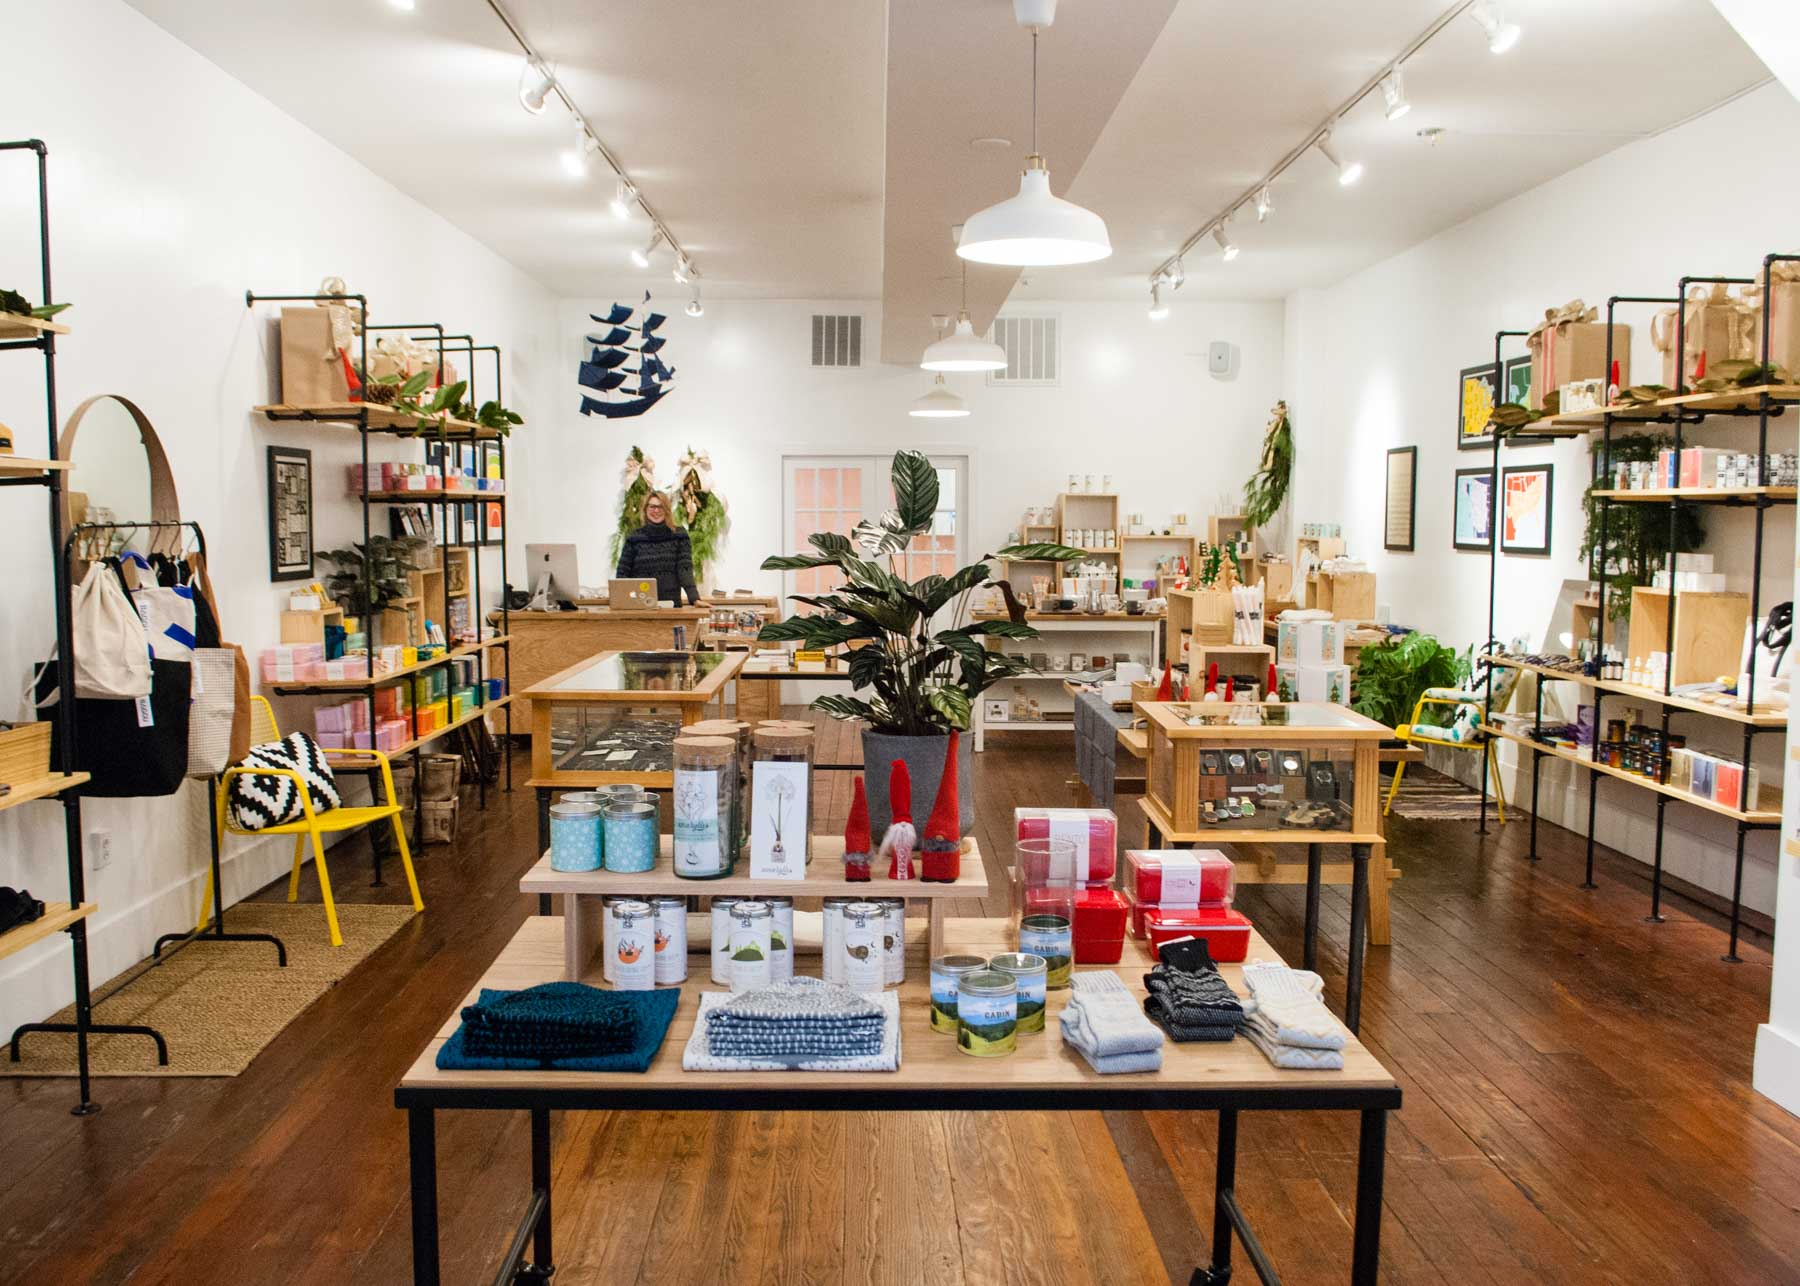 With all the space our Old City store offers, we open with the concept of select homewares and lifestyle items.